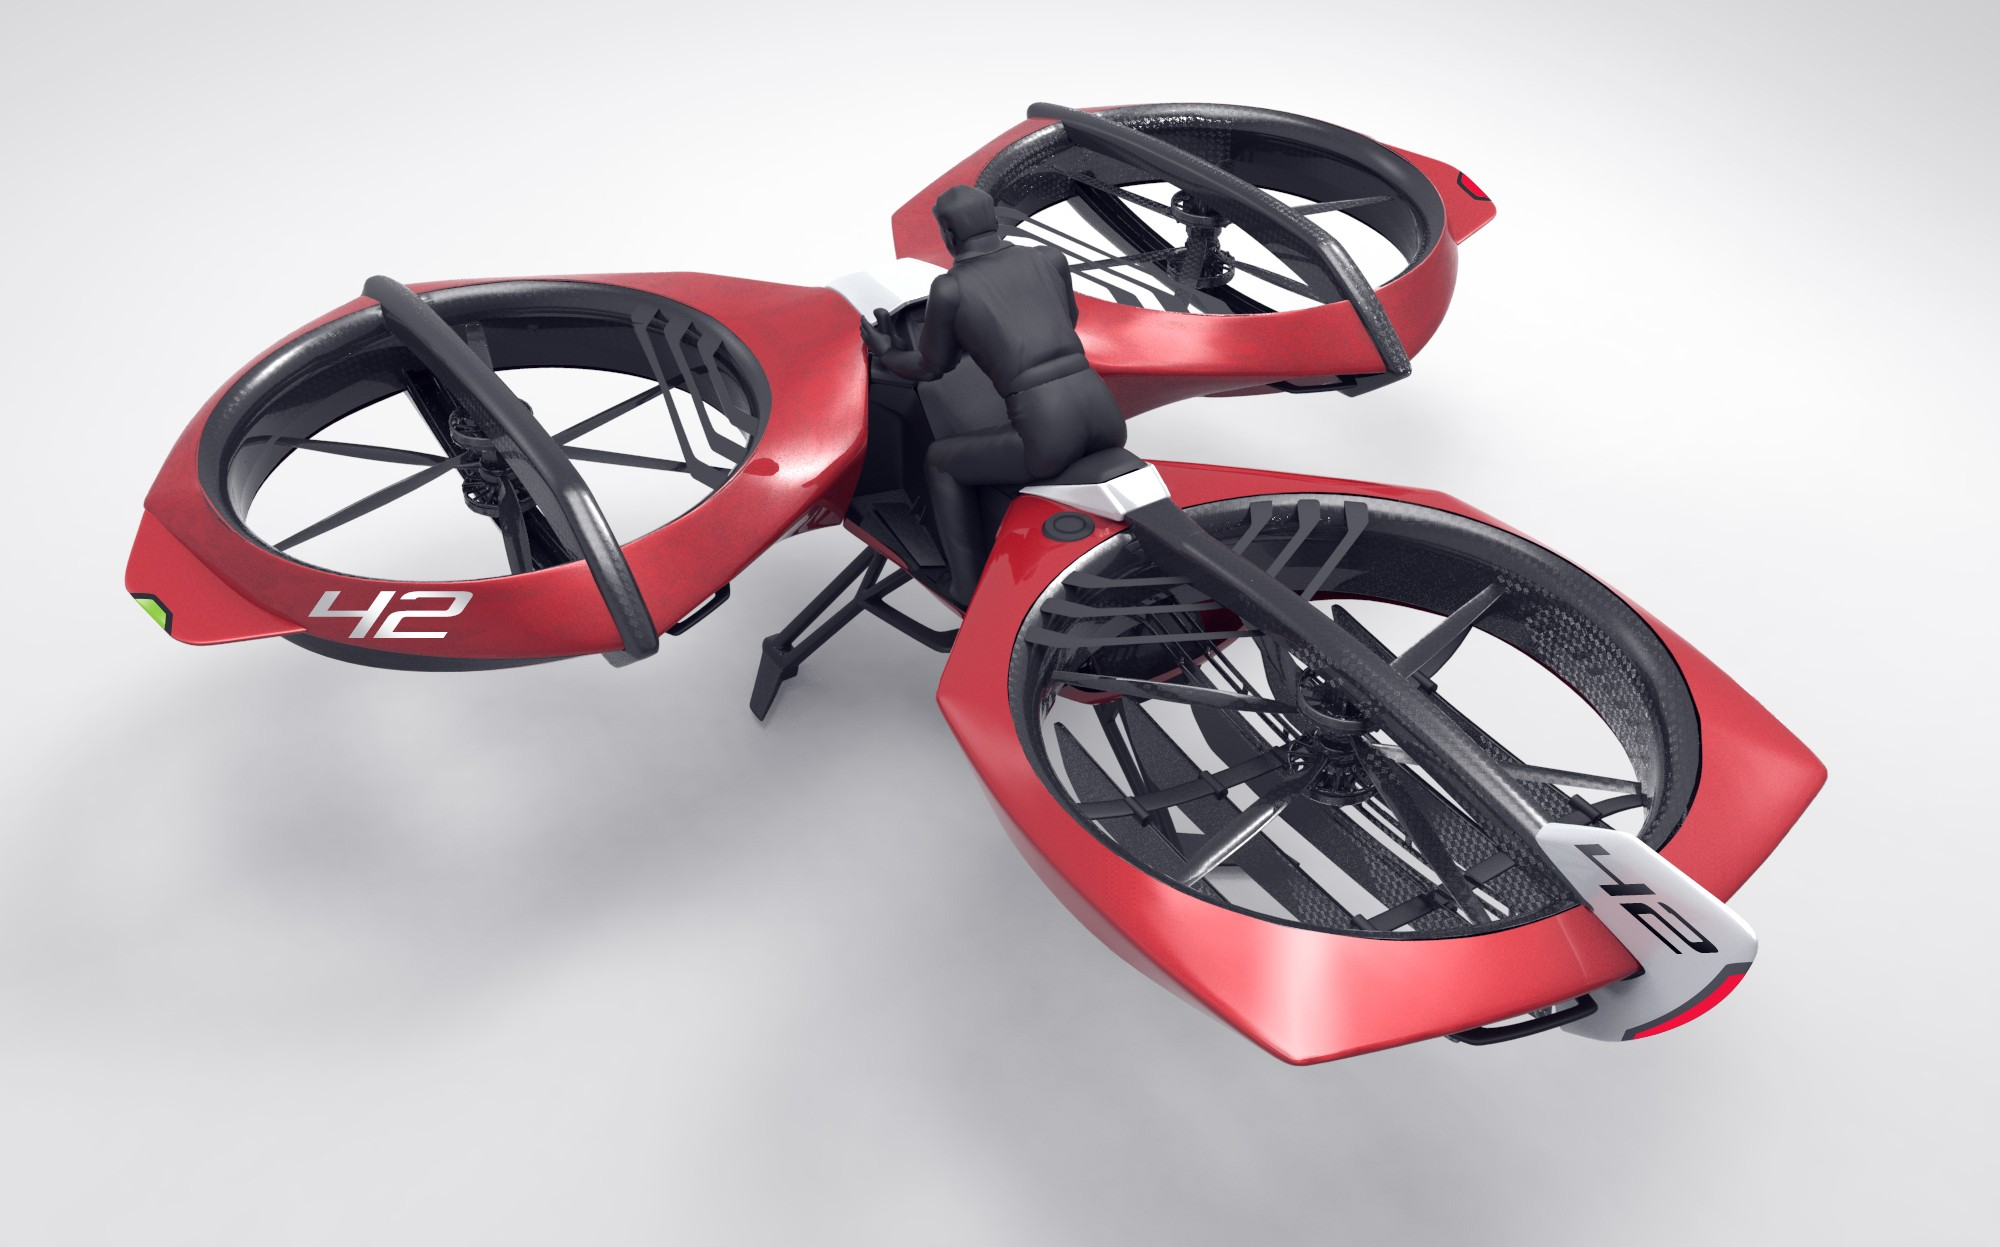 Motorcycle Riding Pants >> Flike Is A Flying Motorcycle You Can Have For $100K - autoevolution